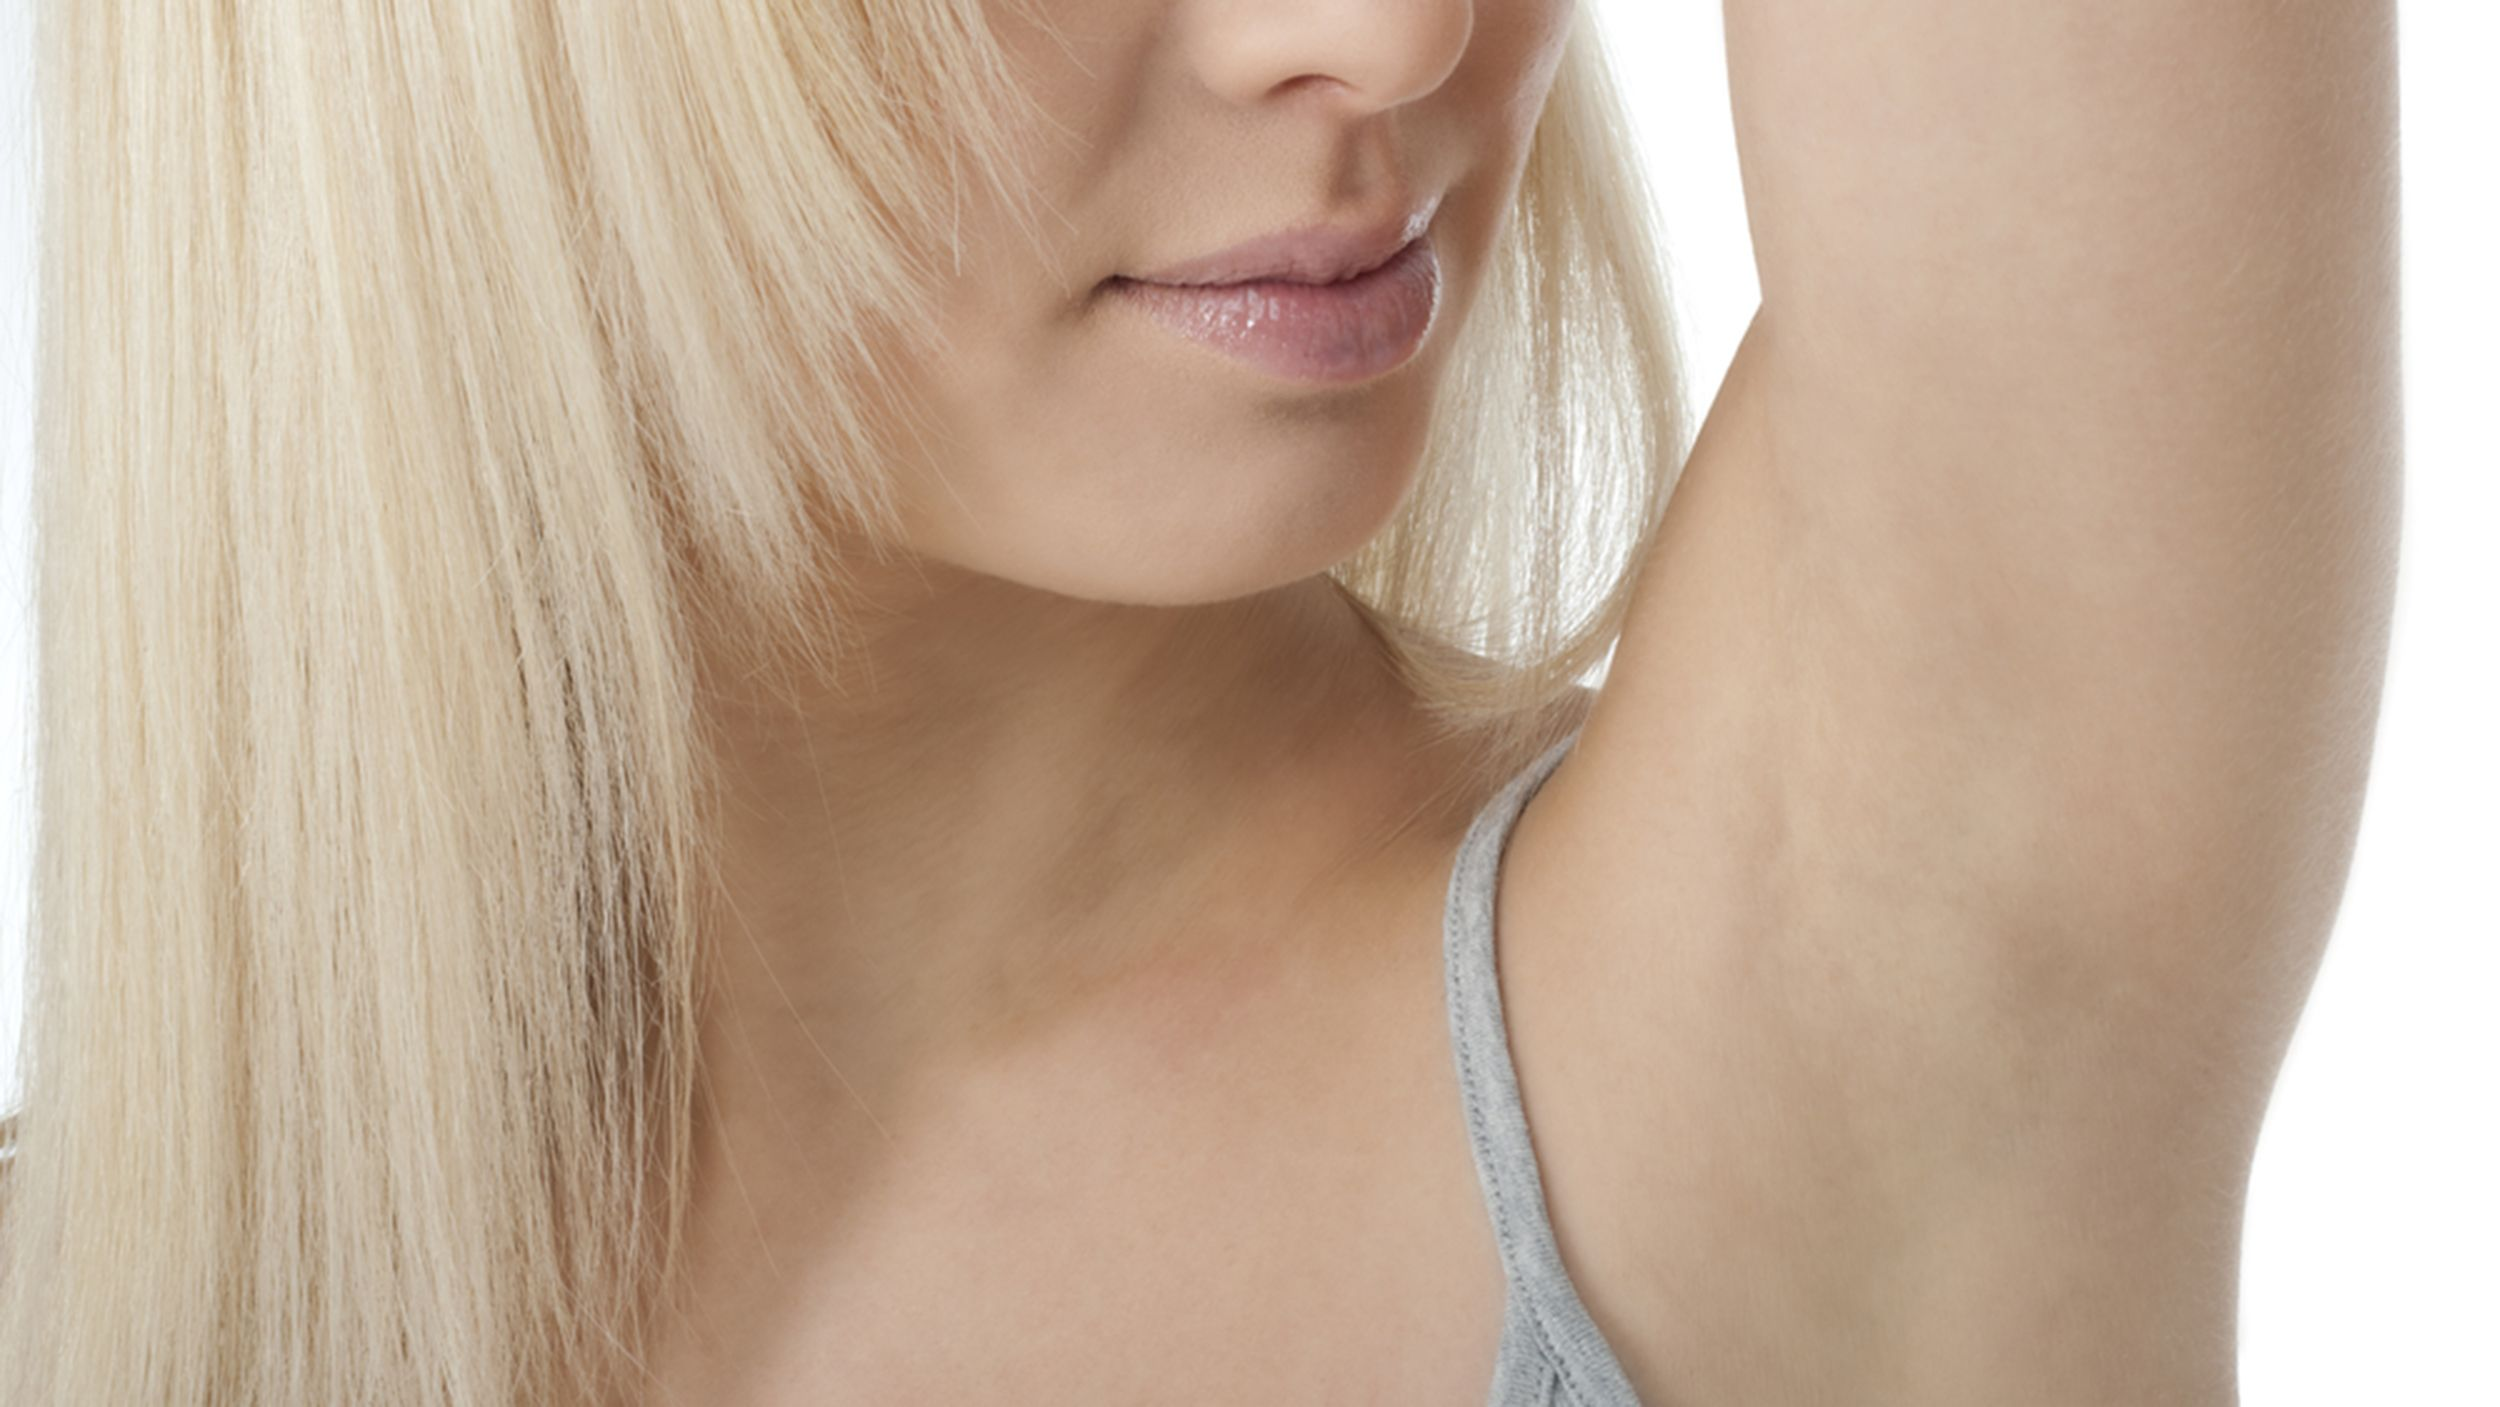 A woman with no underarm hair